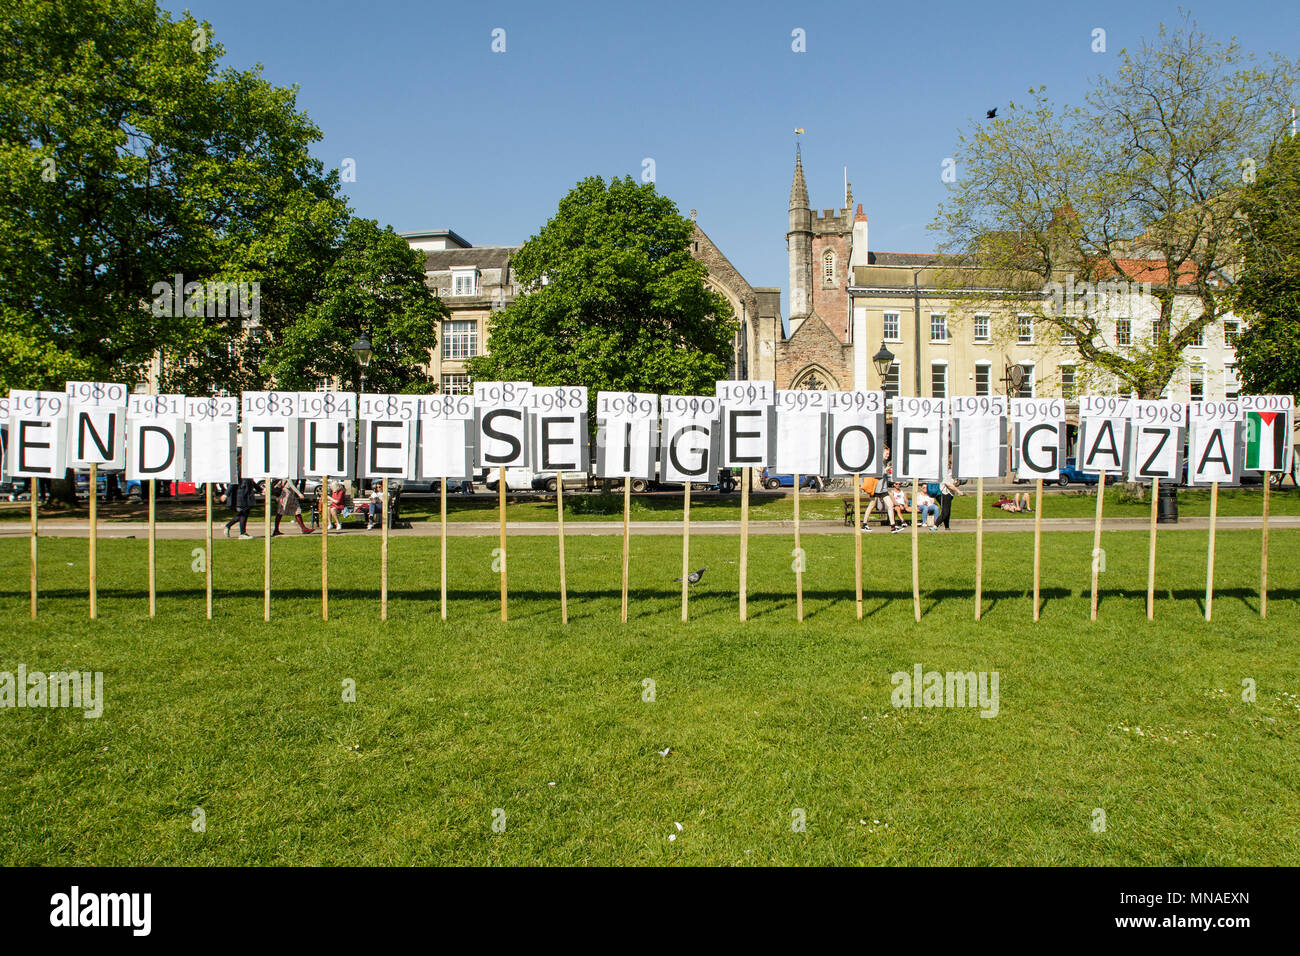 Bristol, UK. 15th May, 2018. An Art installation made up of seventy placards - one for every year since the start of the war was unveiled  outside City Hall ahead of a Pro-Palestinian protest march through Bristol. The Pro-Palestinian protest march was held to allow people to show their support and solidarity with the Palestinian people after 70 Years of Nakba and to protest about Israel's recent actions in Gaza. Credit: lynchpics/Alamy Live News - Stock Image